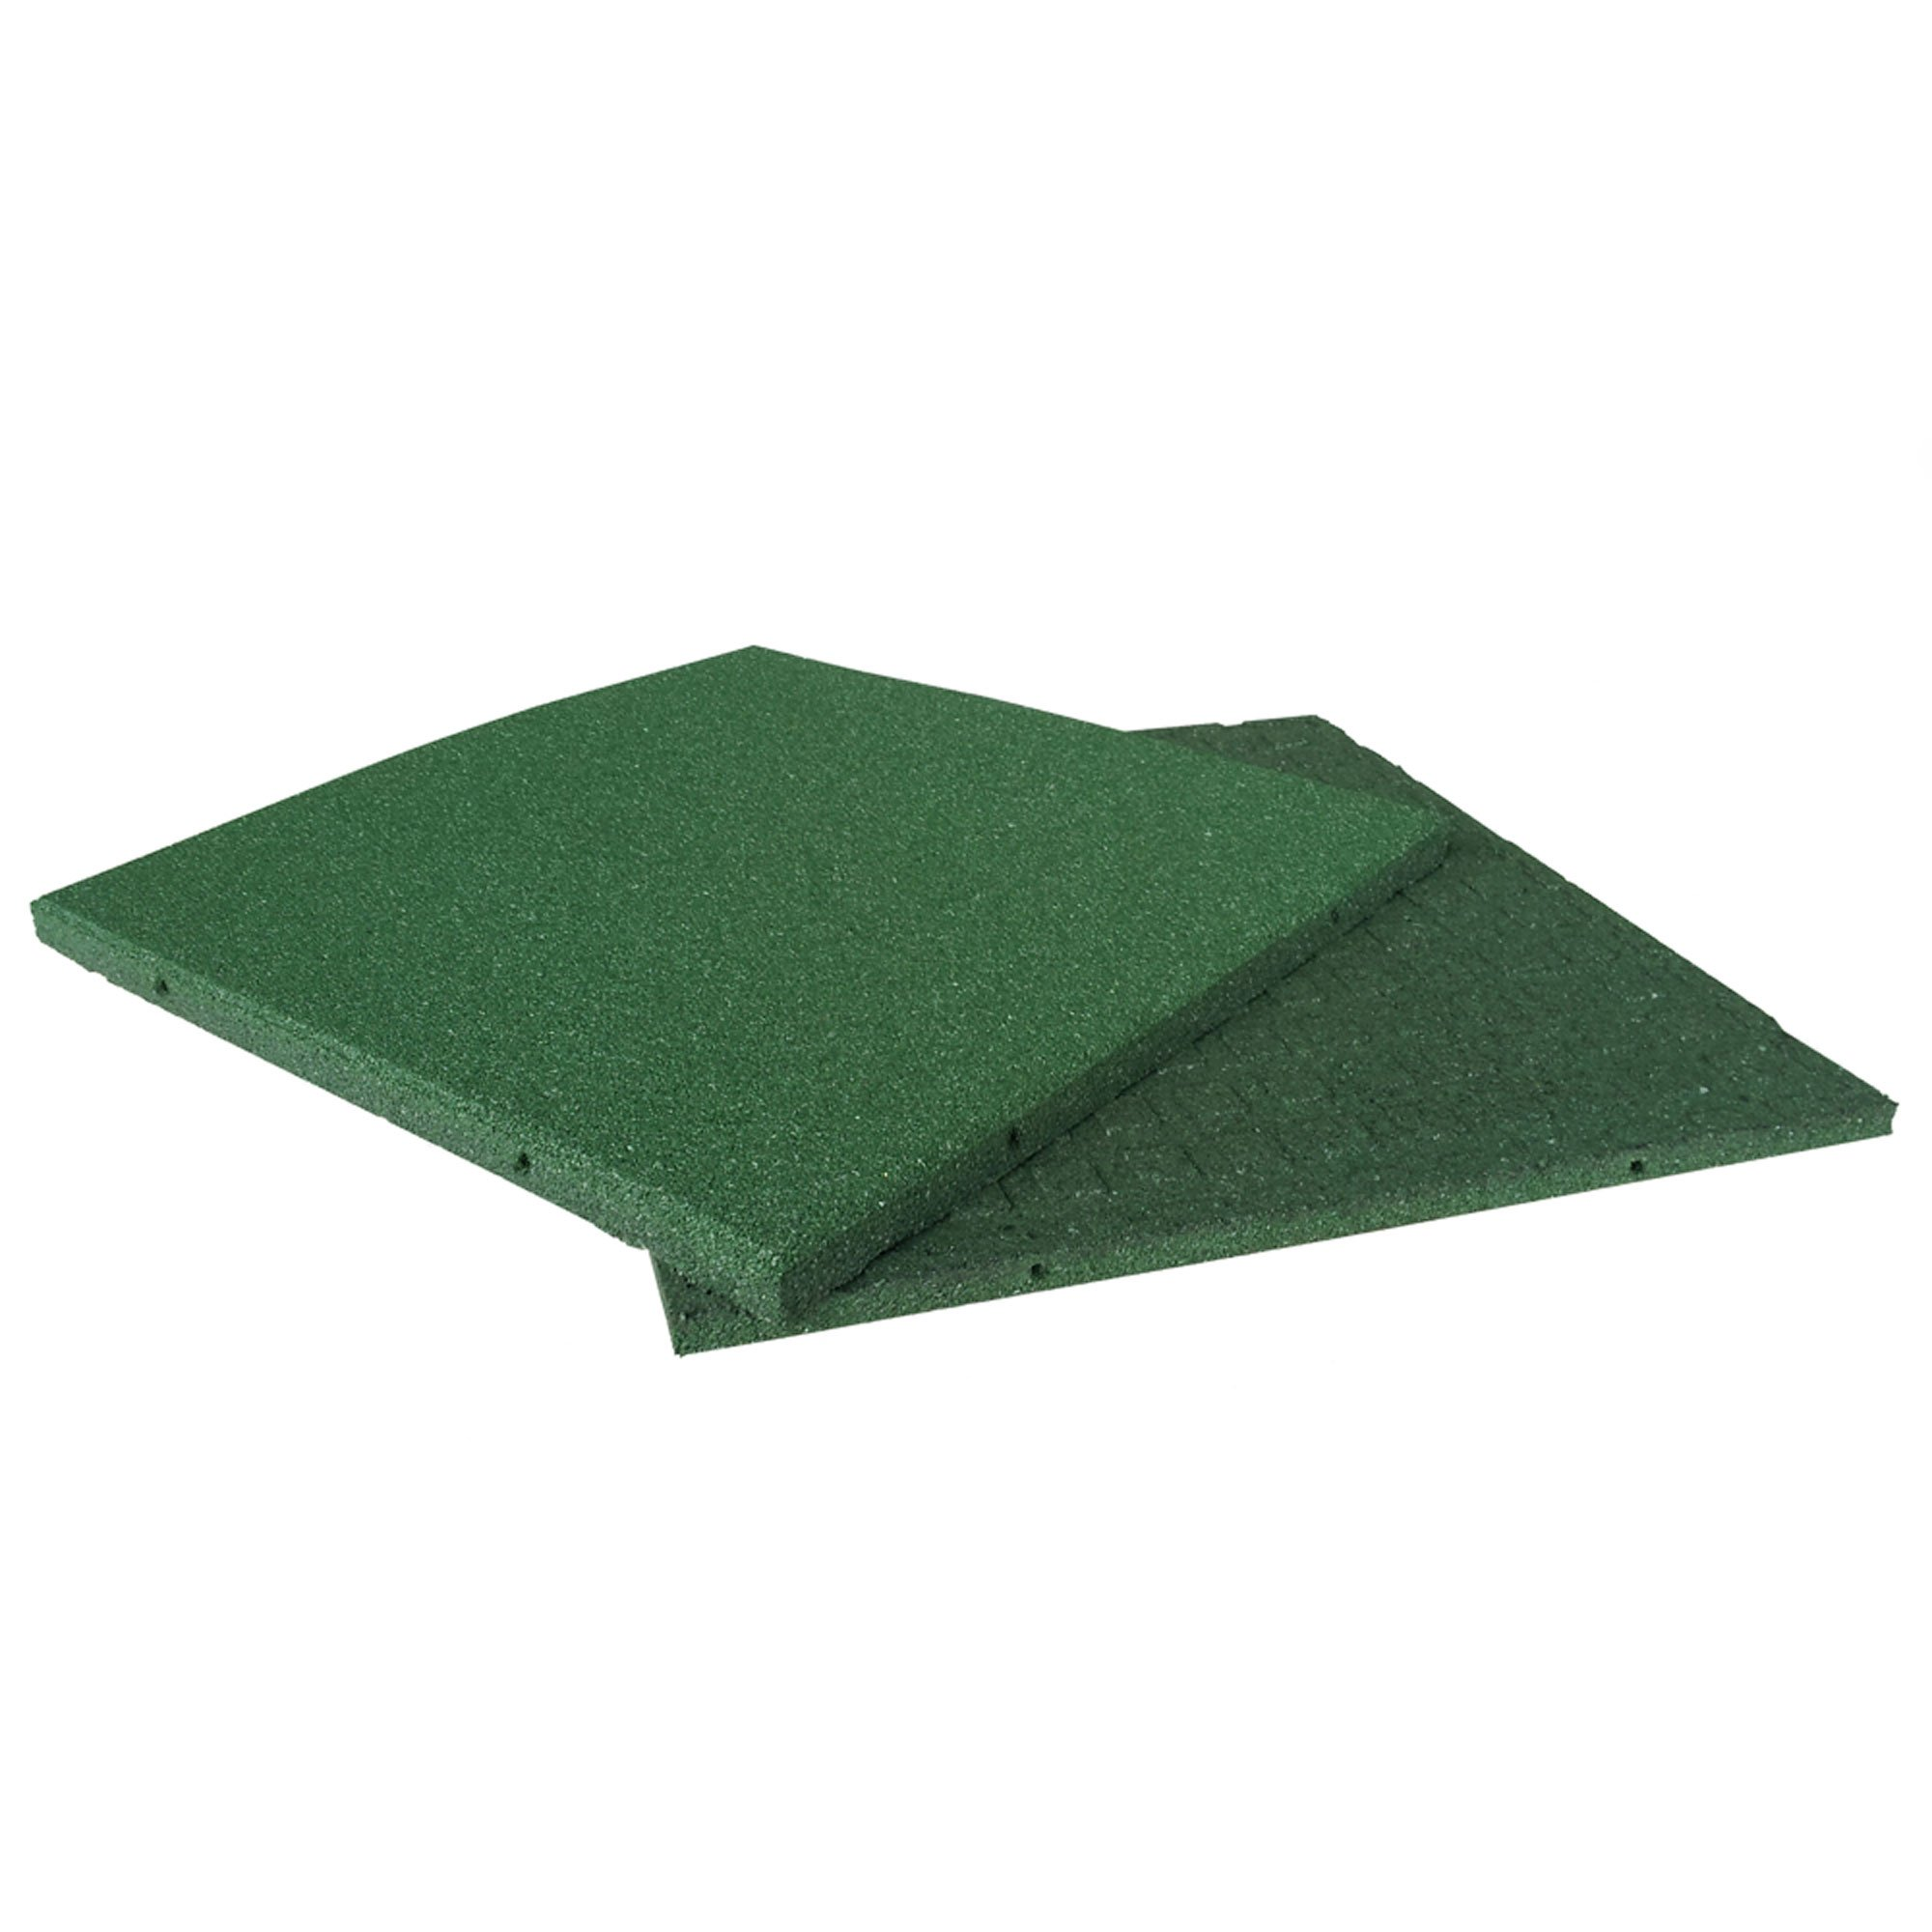 Rubber-Cal Eco-Sport Floor Tile-Pack of 3, Green, 1 x 20 x 20-Inch